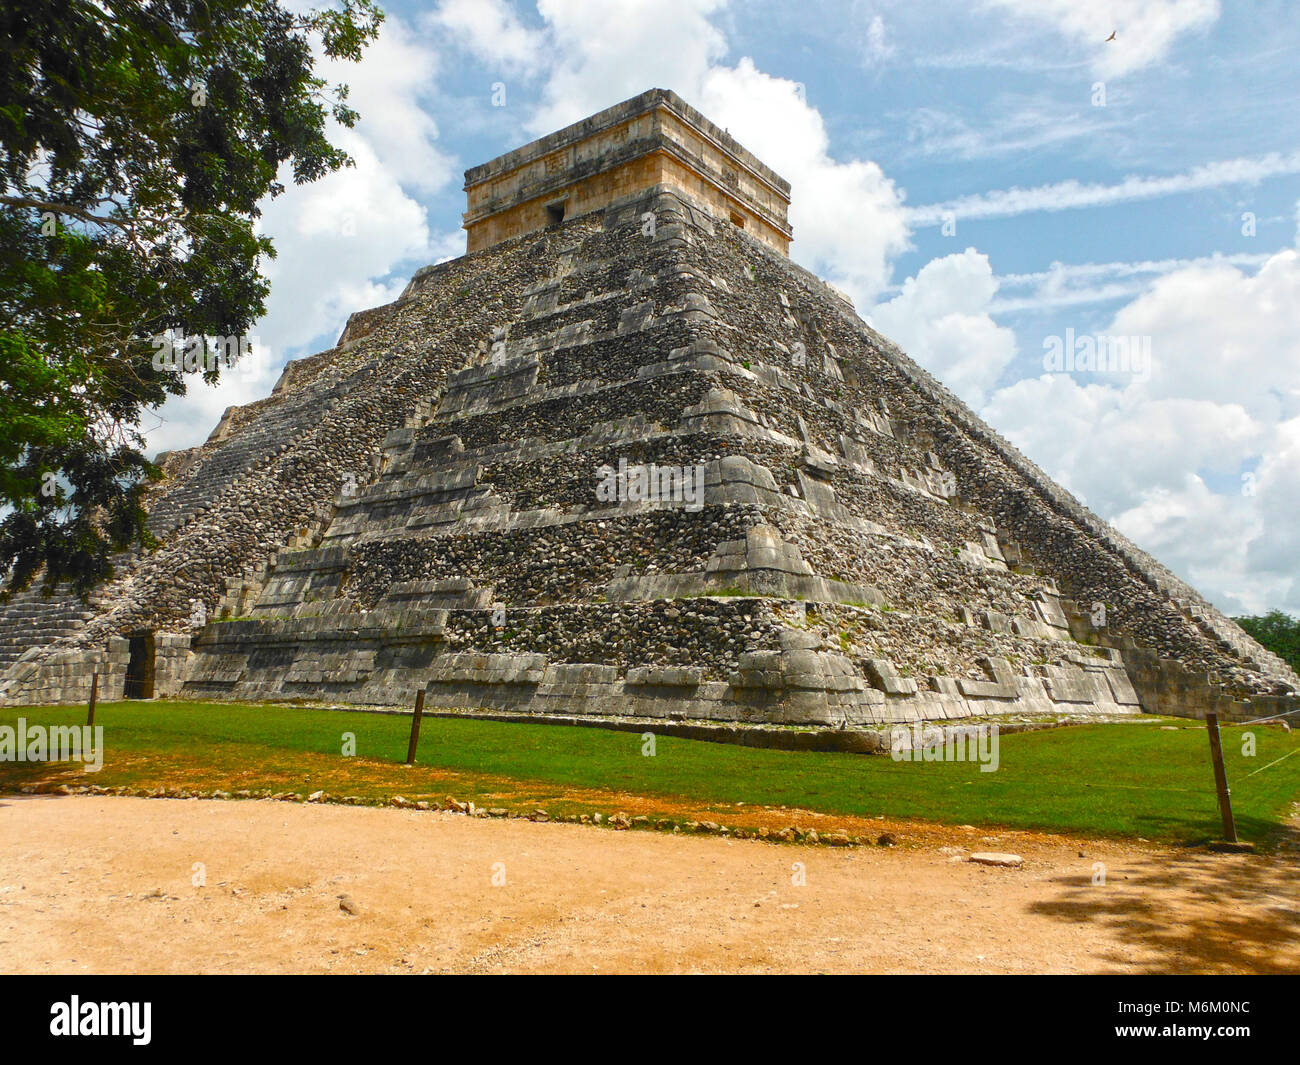 Kukulkan Pyramid in Chichen Itza on the Yucatan, Mexico - Mayan culture - Stock Image